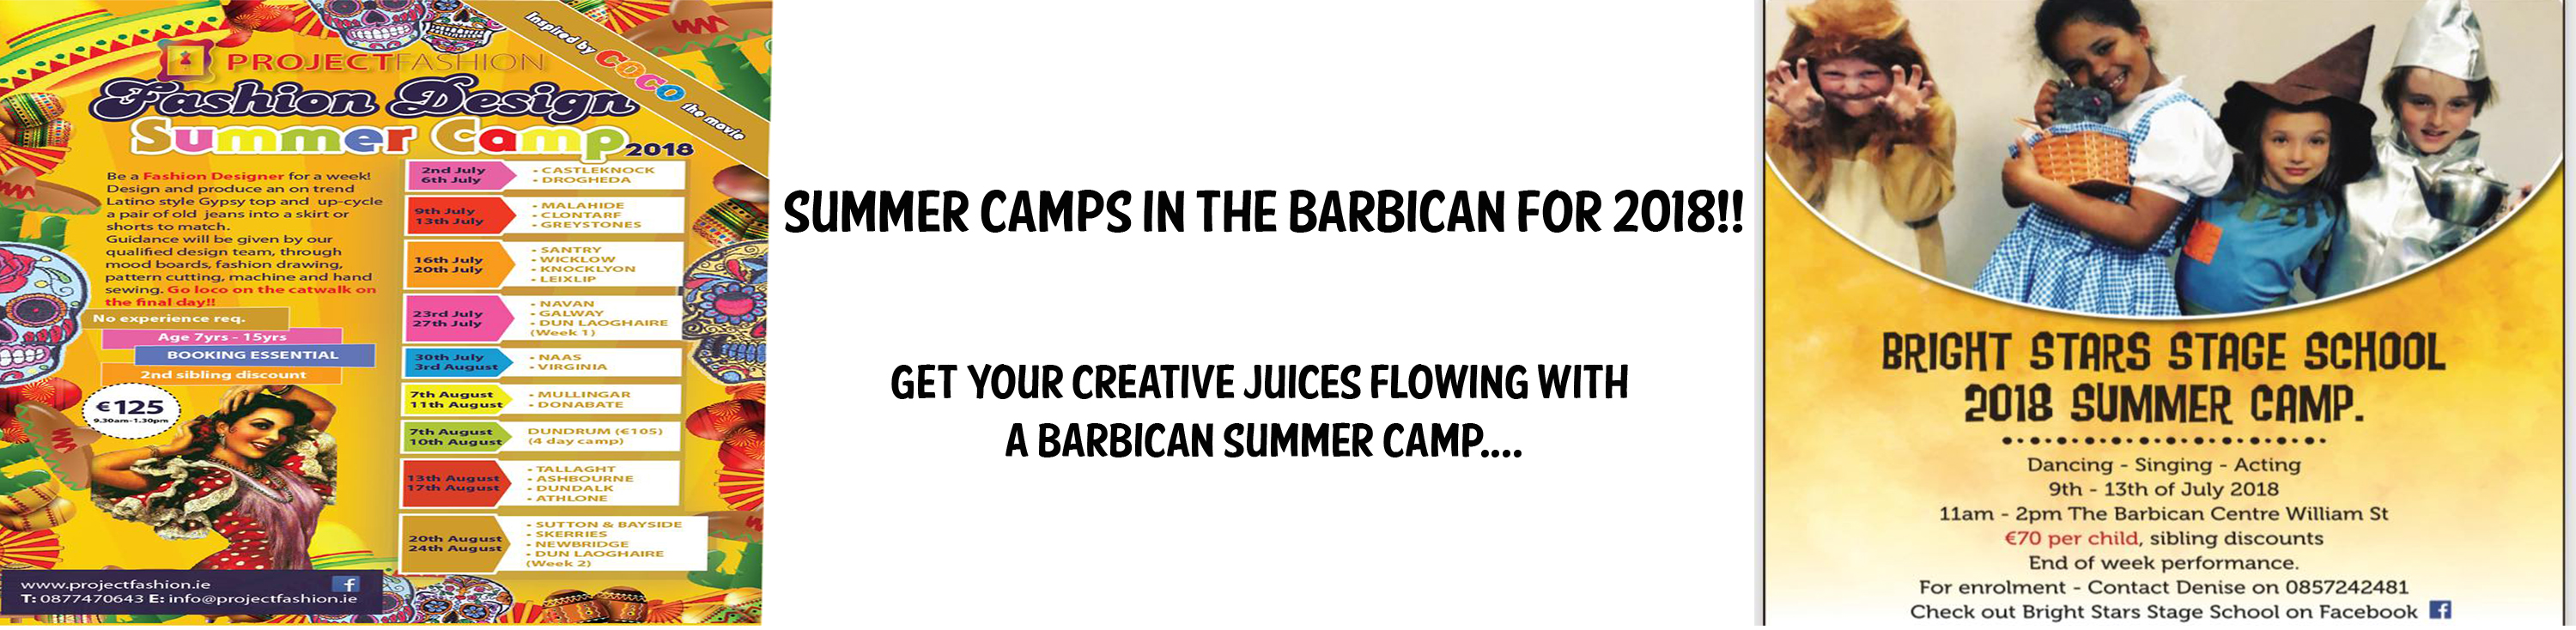 http://www.thebarbican.ie/barbican-summer-camps-2018/